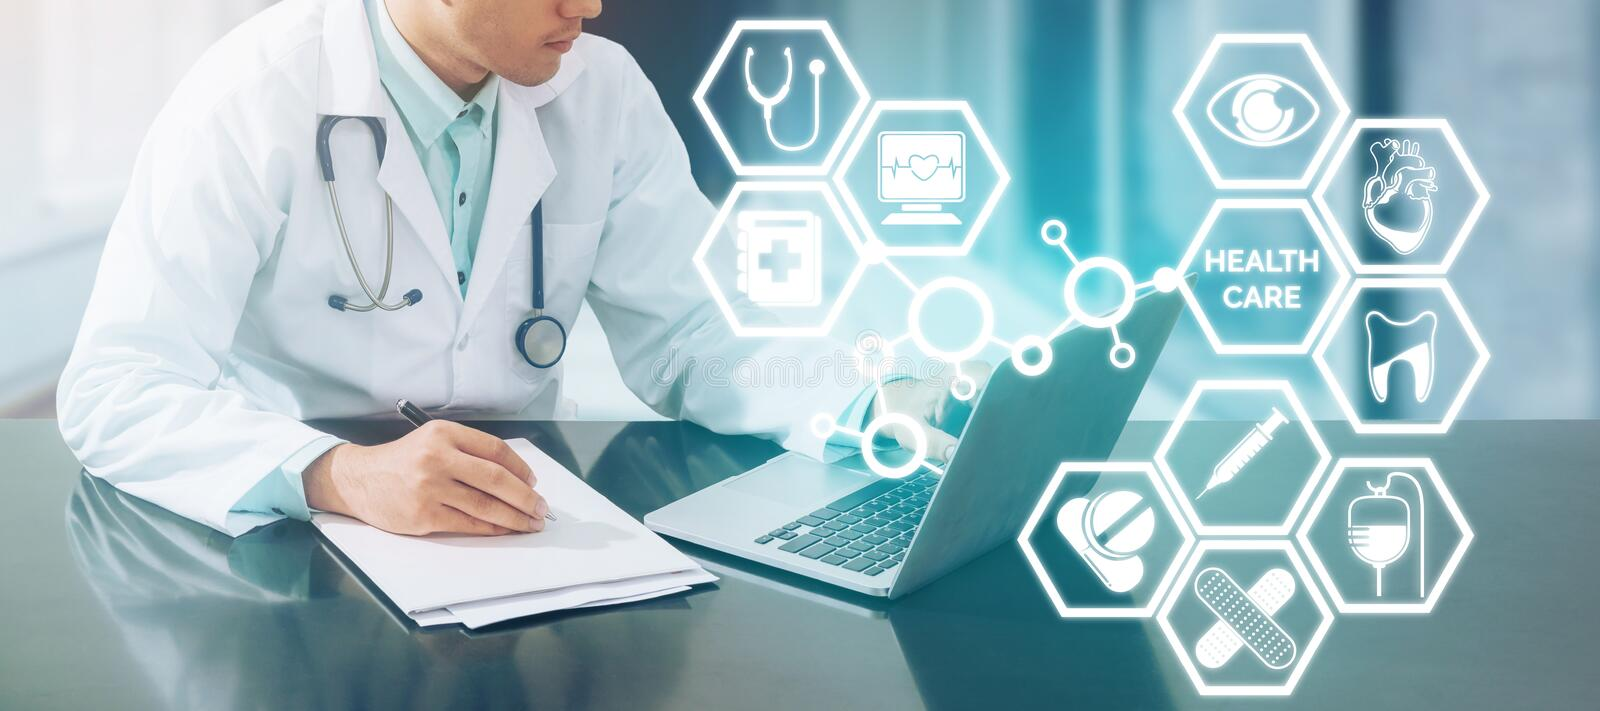 Medical concept - Doctor on Computer with Icons. Medical Concept - Doctor working in hospital with computer and writing paperwork illustrated with medical icons stock images